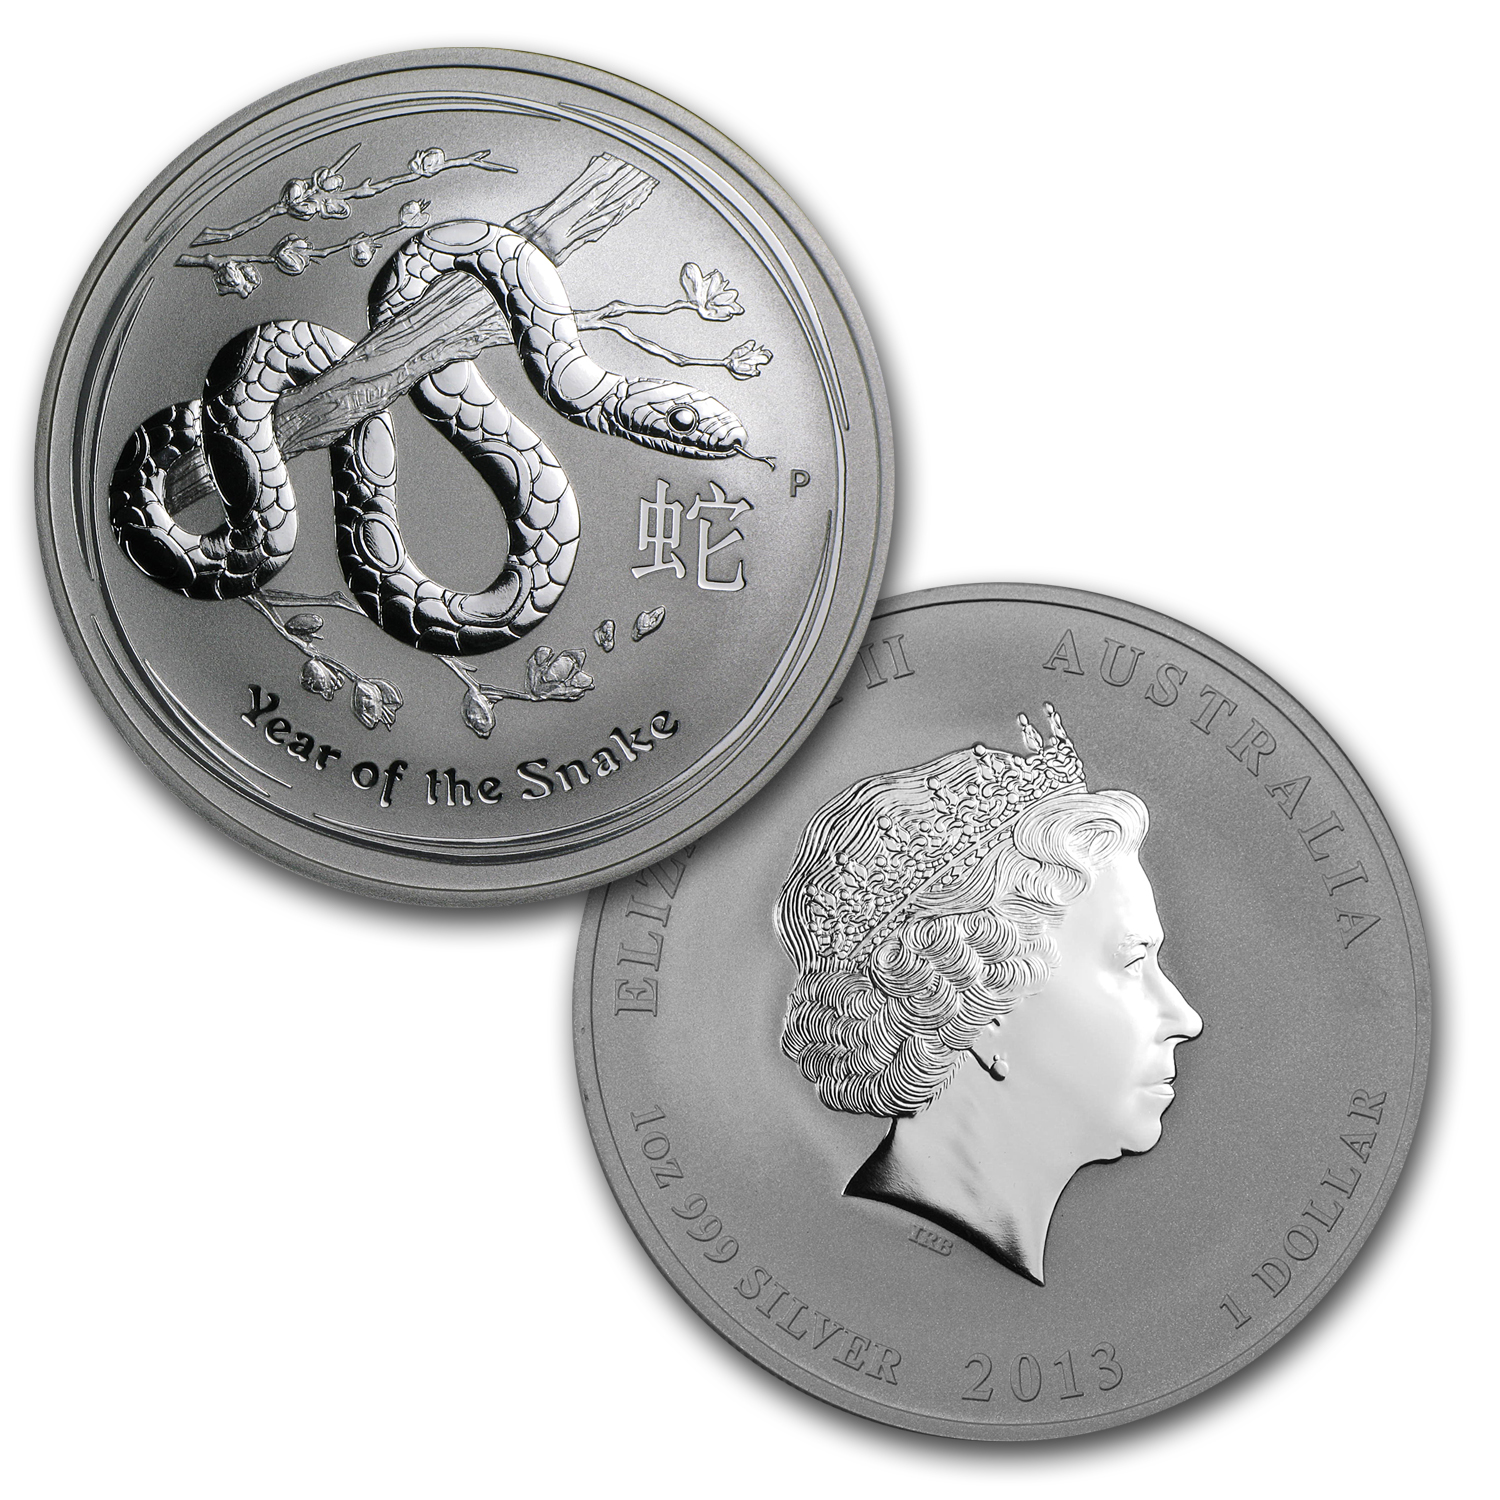 2013 Australia 4-Coin 1 oz Silver Year of the Snake Type Set